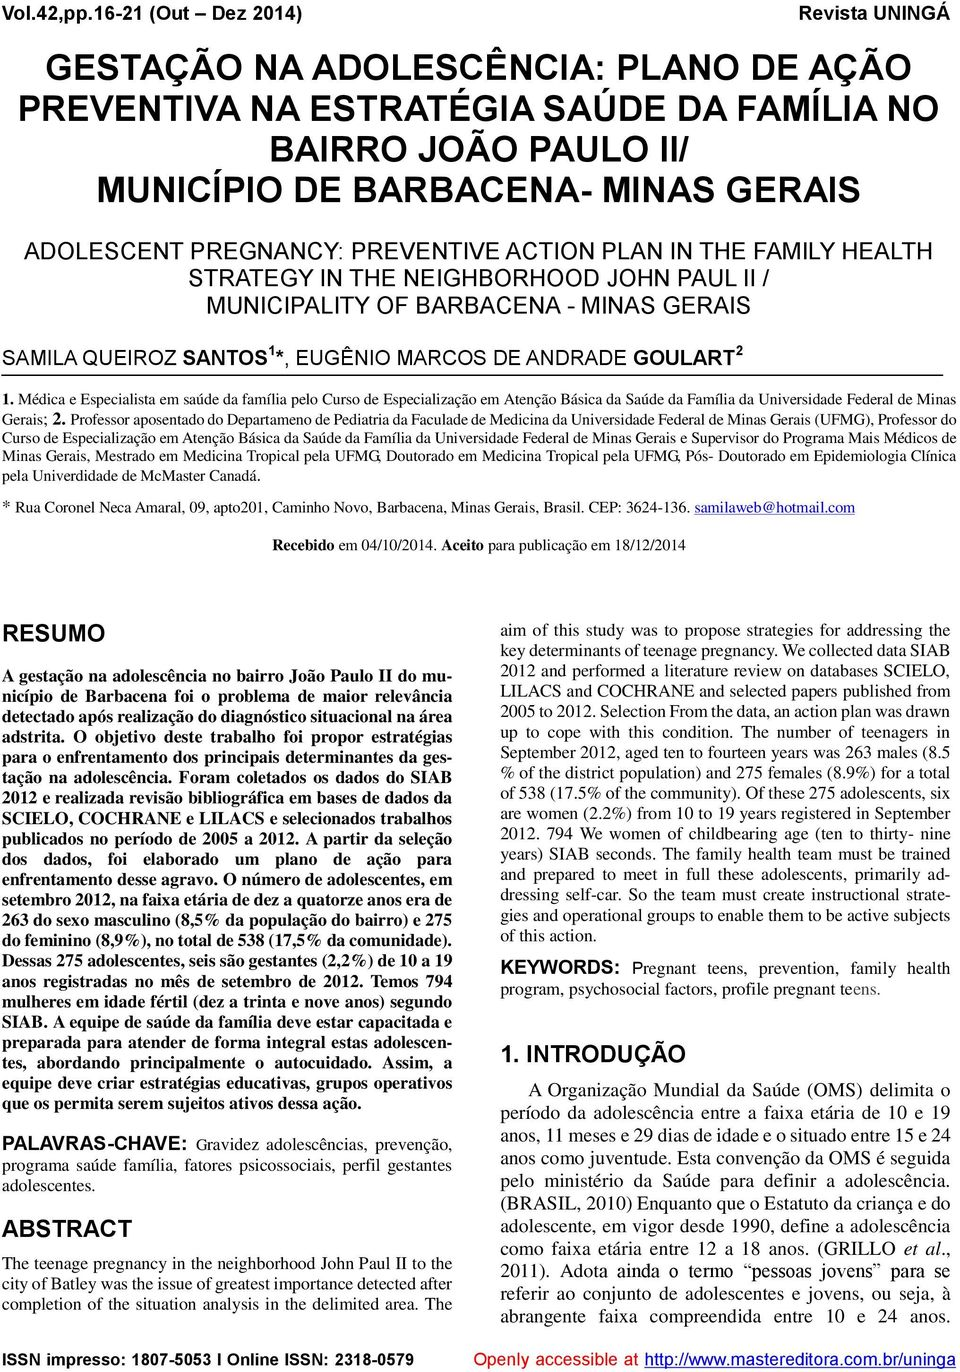 PREGNANCY: PREVENTIVE ACTION PLAN IN THE FAMILY HEALTH STRATEGY IN THE NEIGHBORHOOD JOHN PAUL II / MUNICIPALITY OF BARBACENA - MINAS GERAIS SAMILA QUEIROZ SANTOS 1 *, EUGÊNIO MARCOS DE ANDRADE